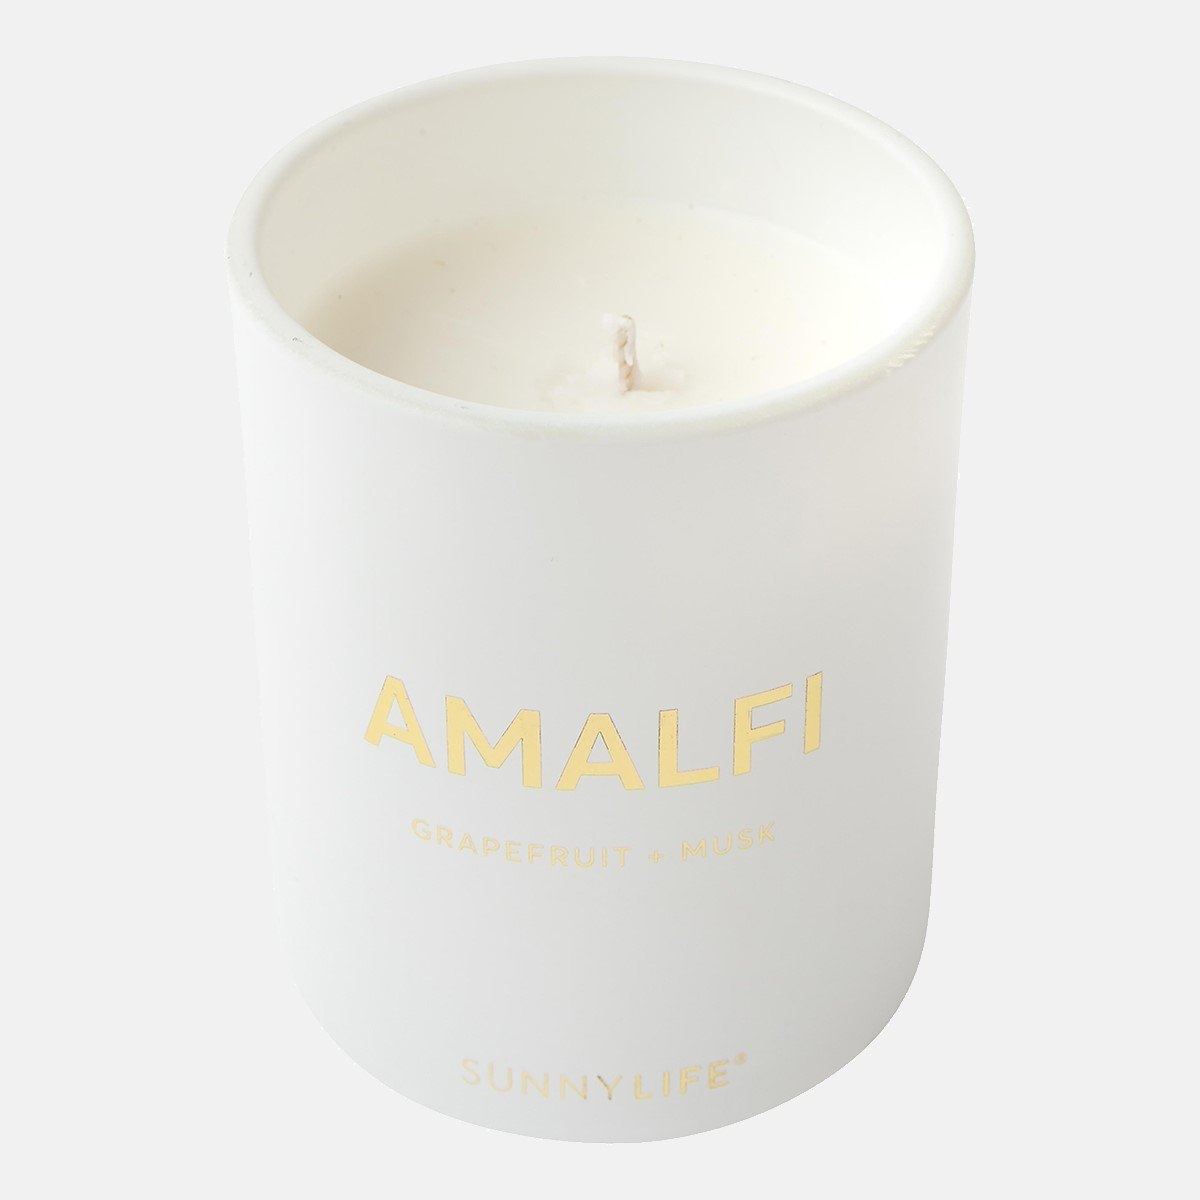 Amalfi Scented Candle - Small